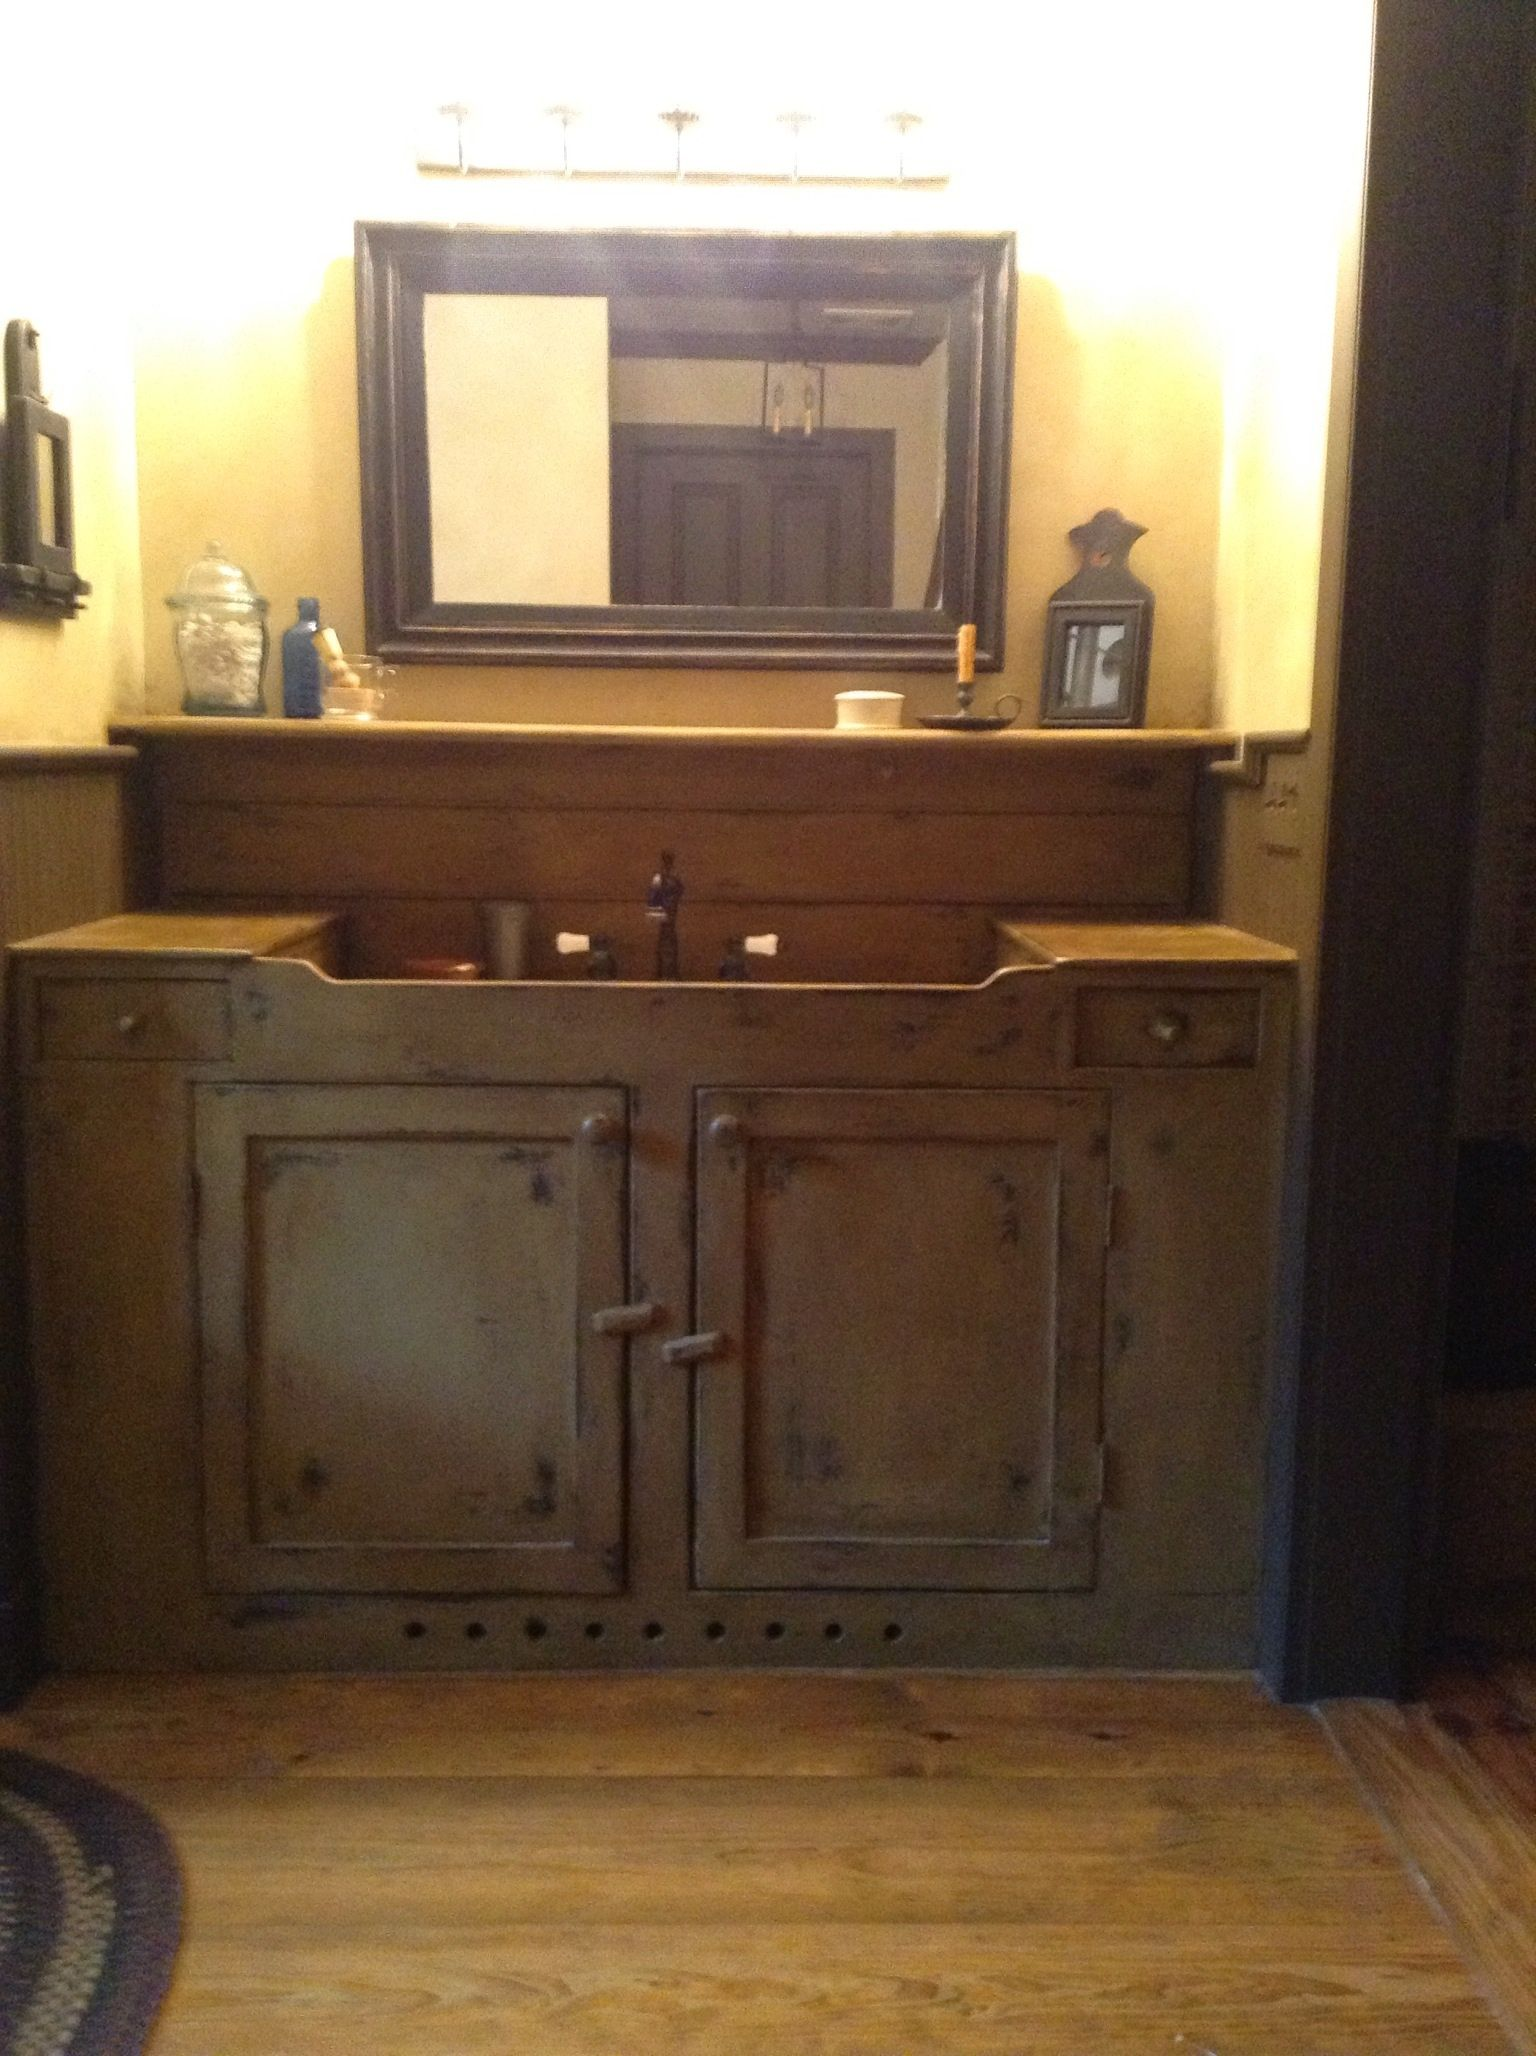 Primitive bathroom vanity 28 images primitive bathroom for Alaska fishing jobs craigslist